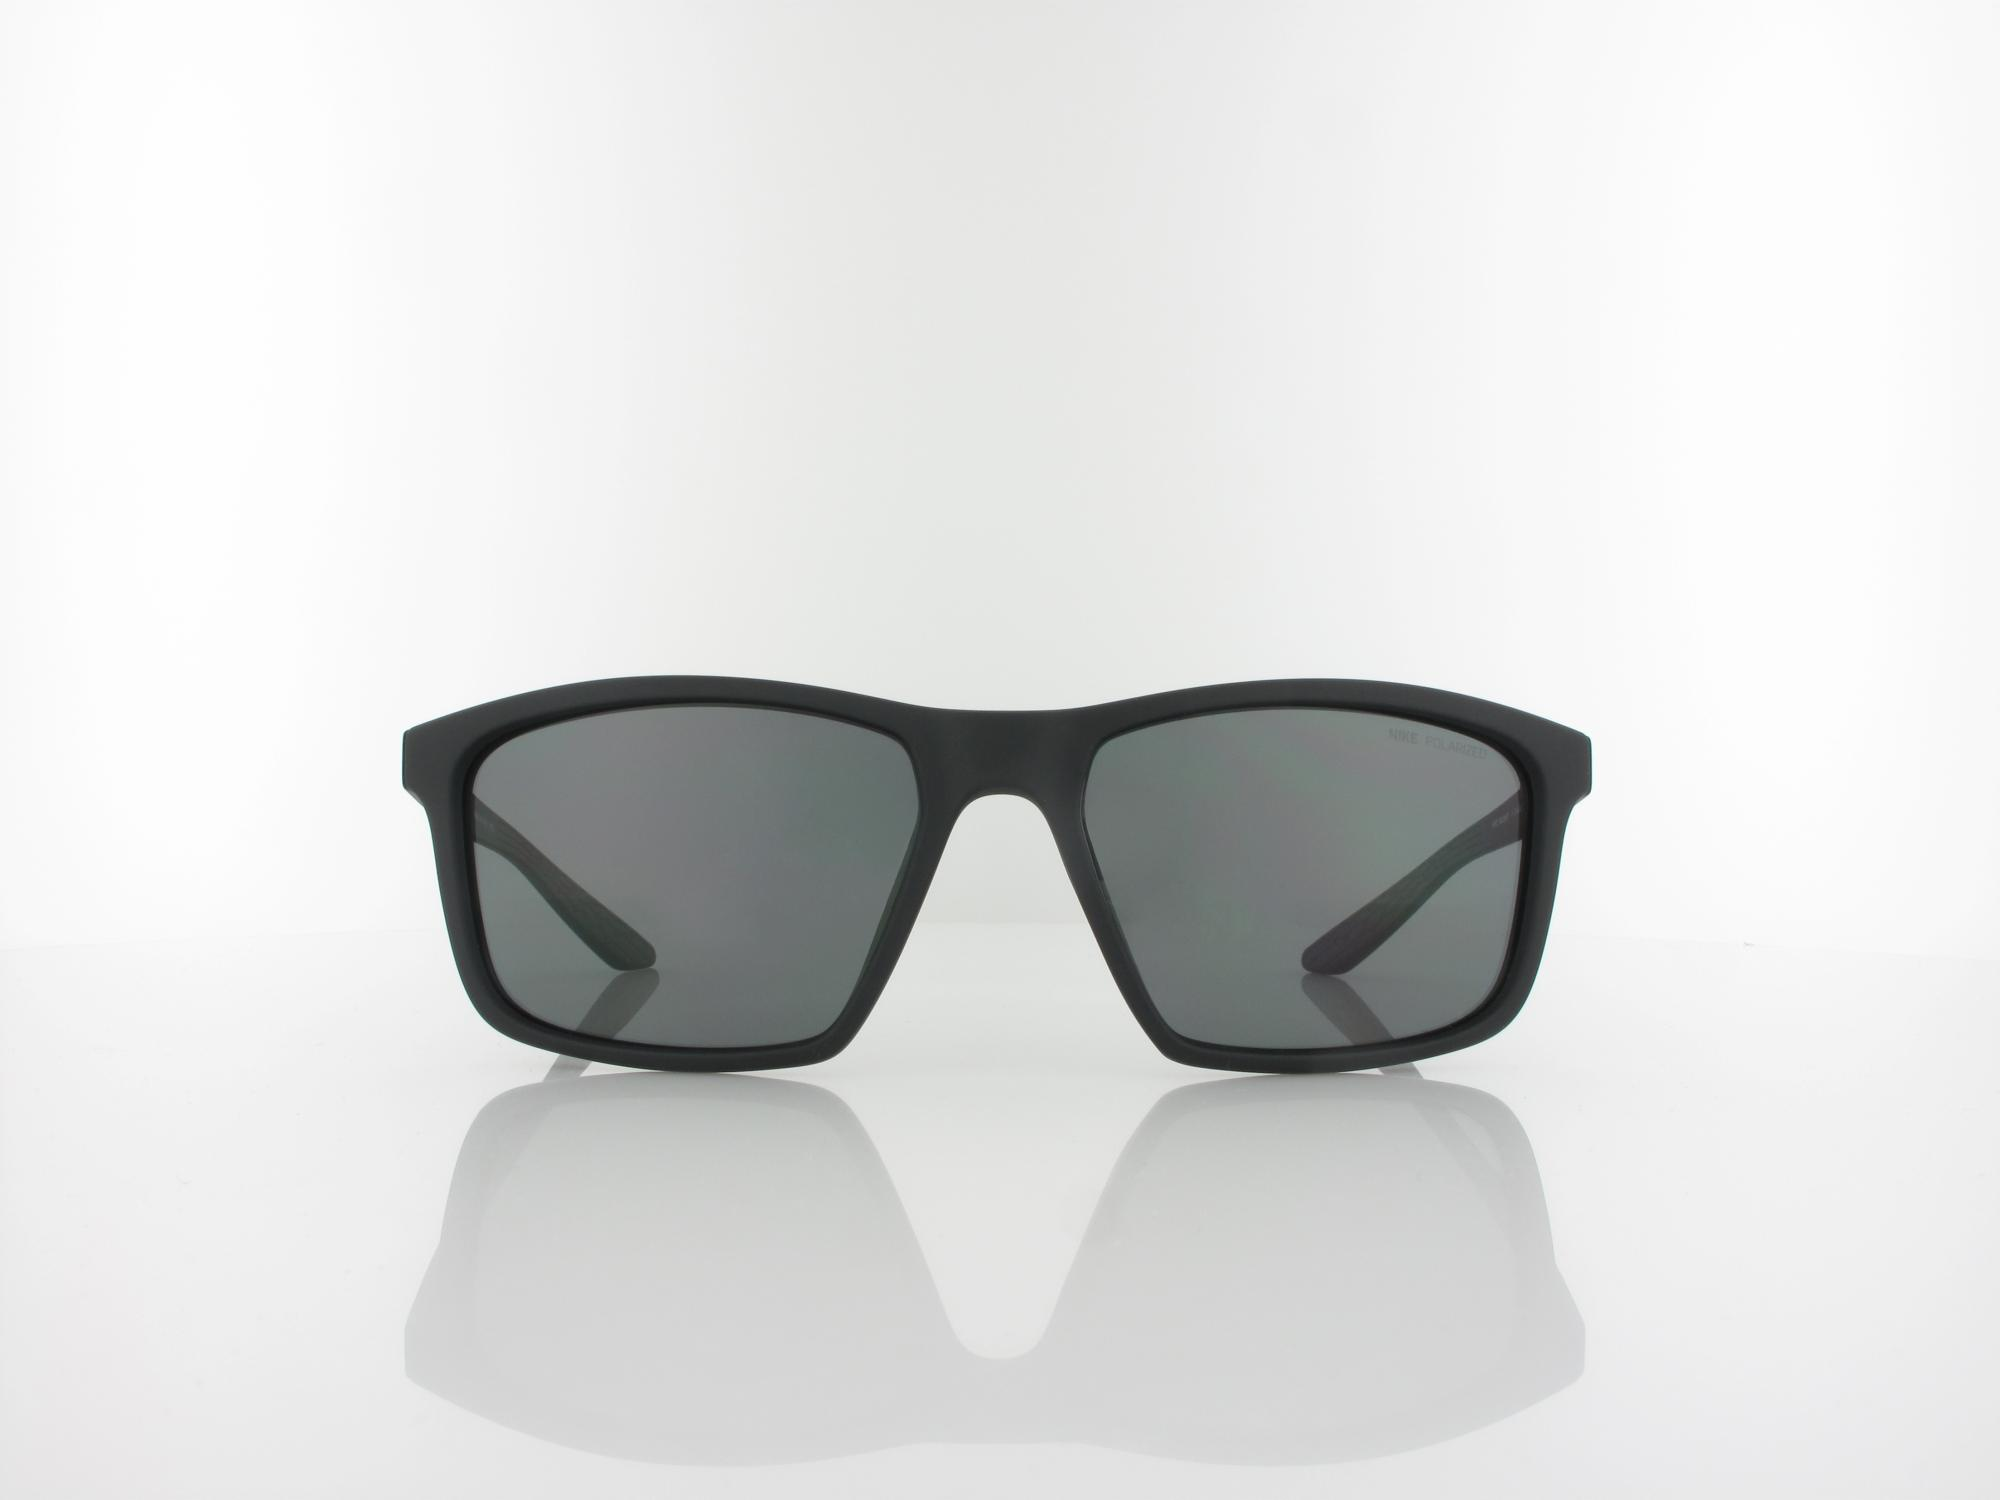 Nike | Valiant P CW4640 010 60 | matte black silver / polarized grey